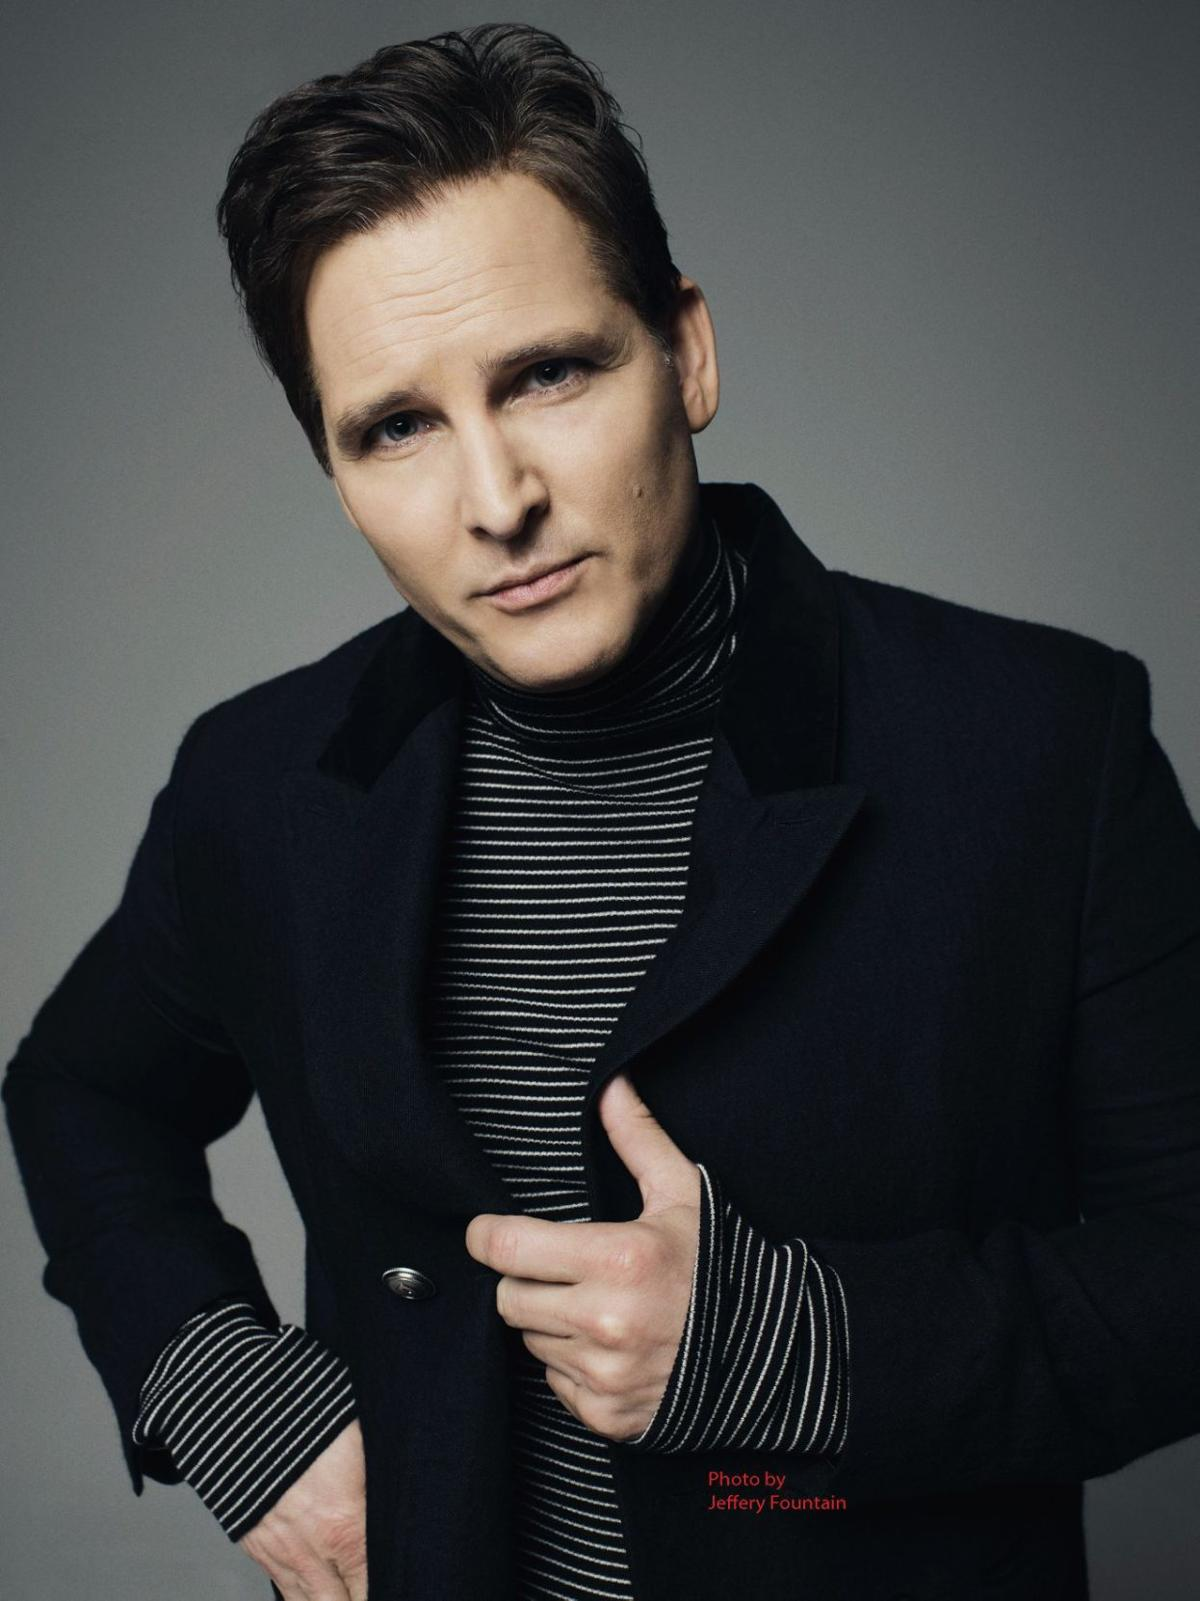 PeterFacinelli.jpg